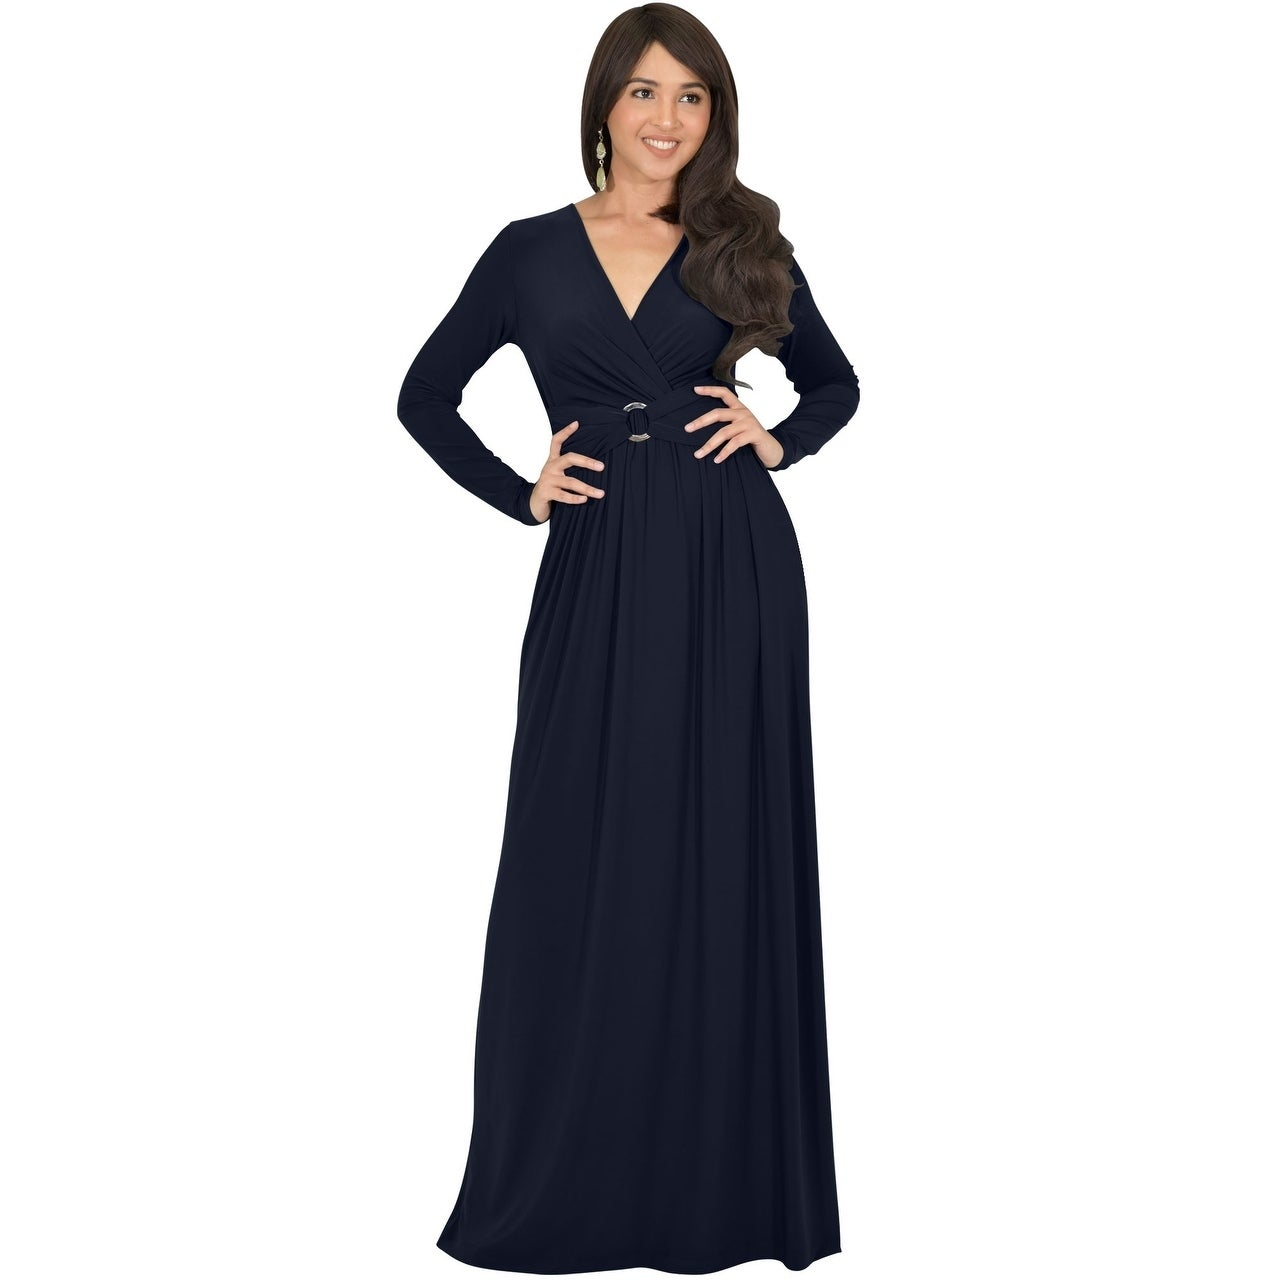 819254fe5485 Shop KOH KOH Womens Belted Flowy Long Semi Formal Sleeve Stylish Maxi Dress  - Free Shipping Today - Overstock - 23107026